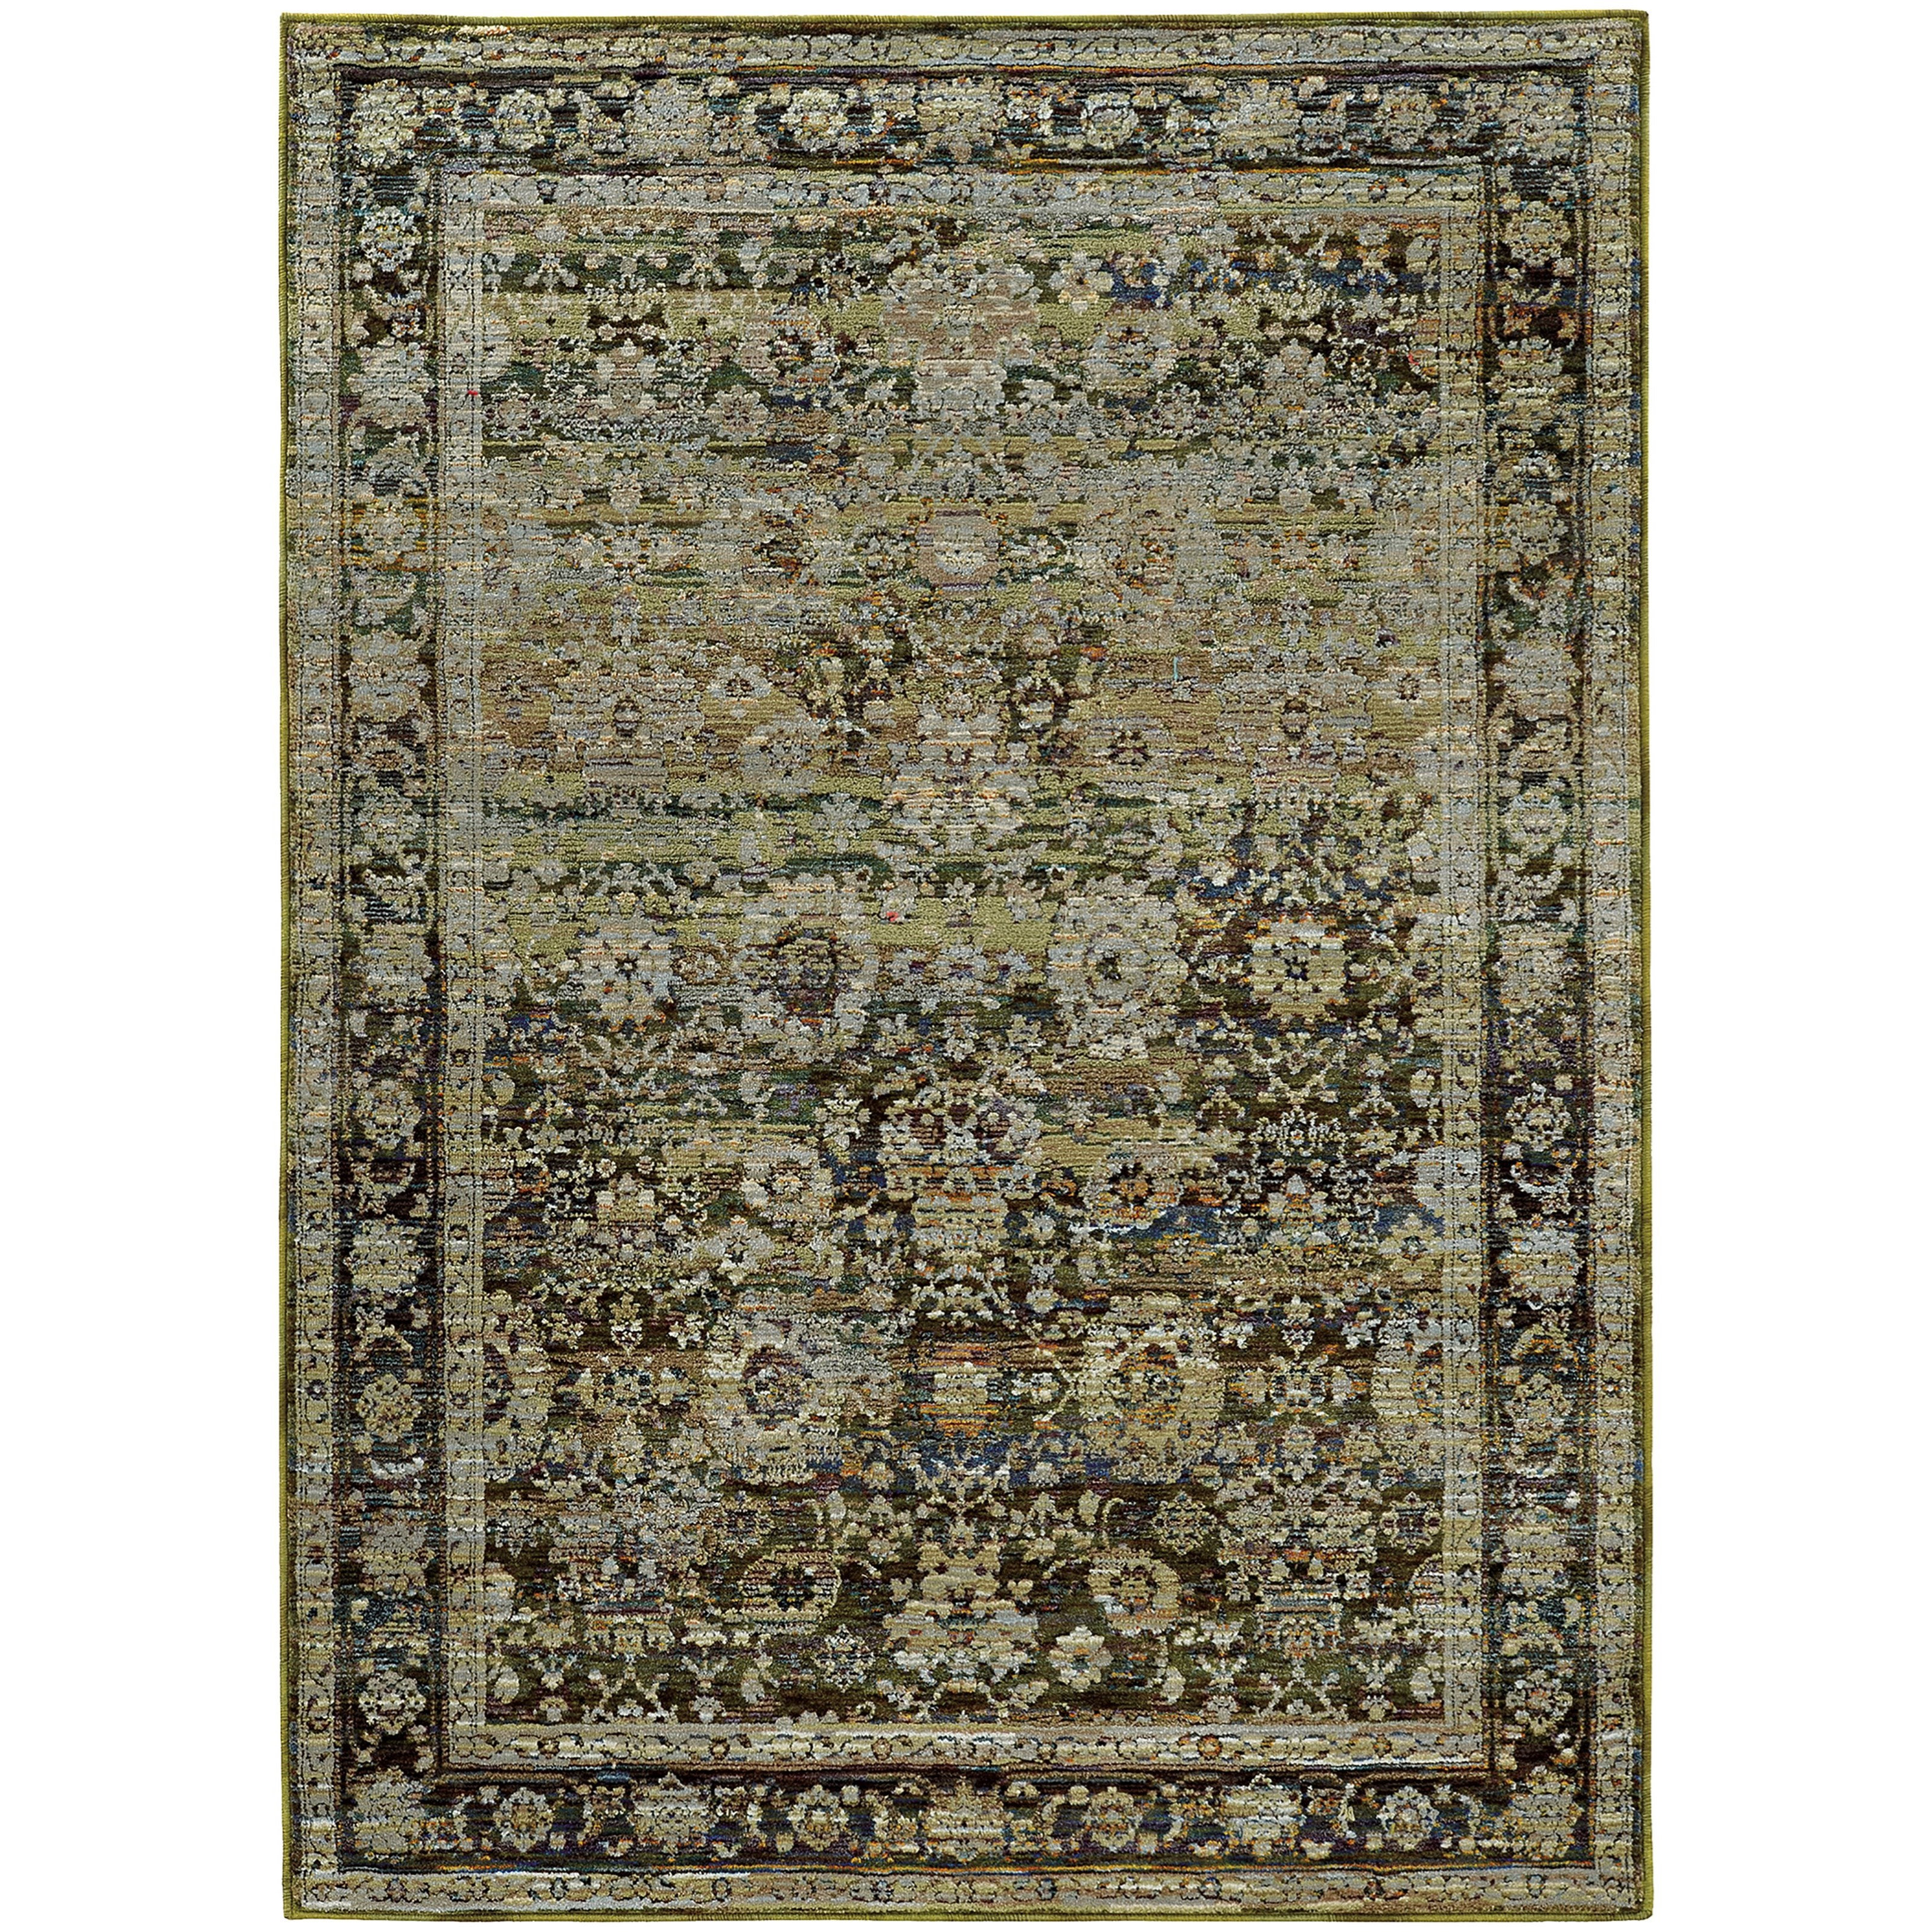 """Andorra 6' 7"""" X  9' 6"""" Casual Green/ Brown Rectangle by Oriental Weavers at Steger's Furniture"""